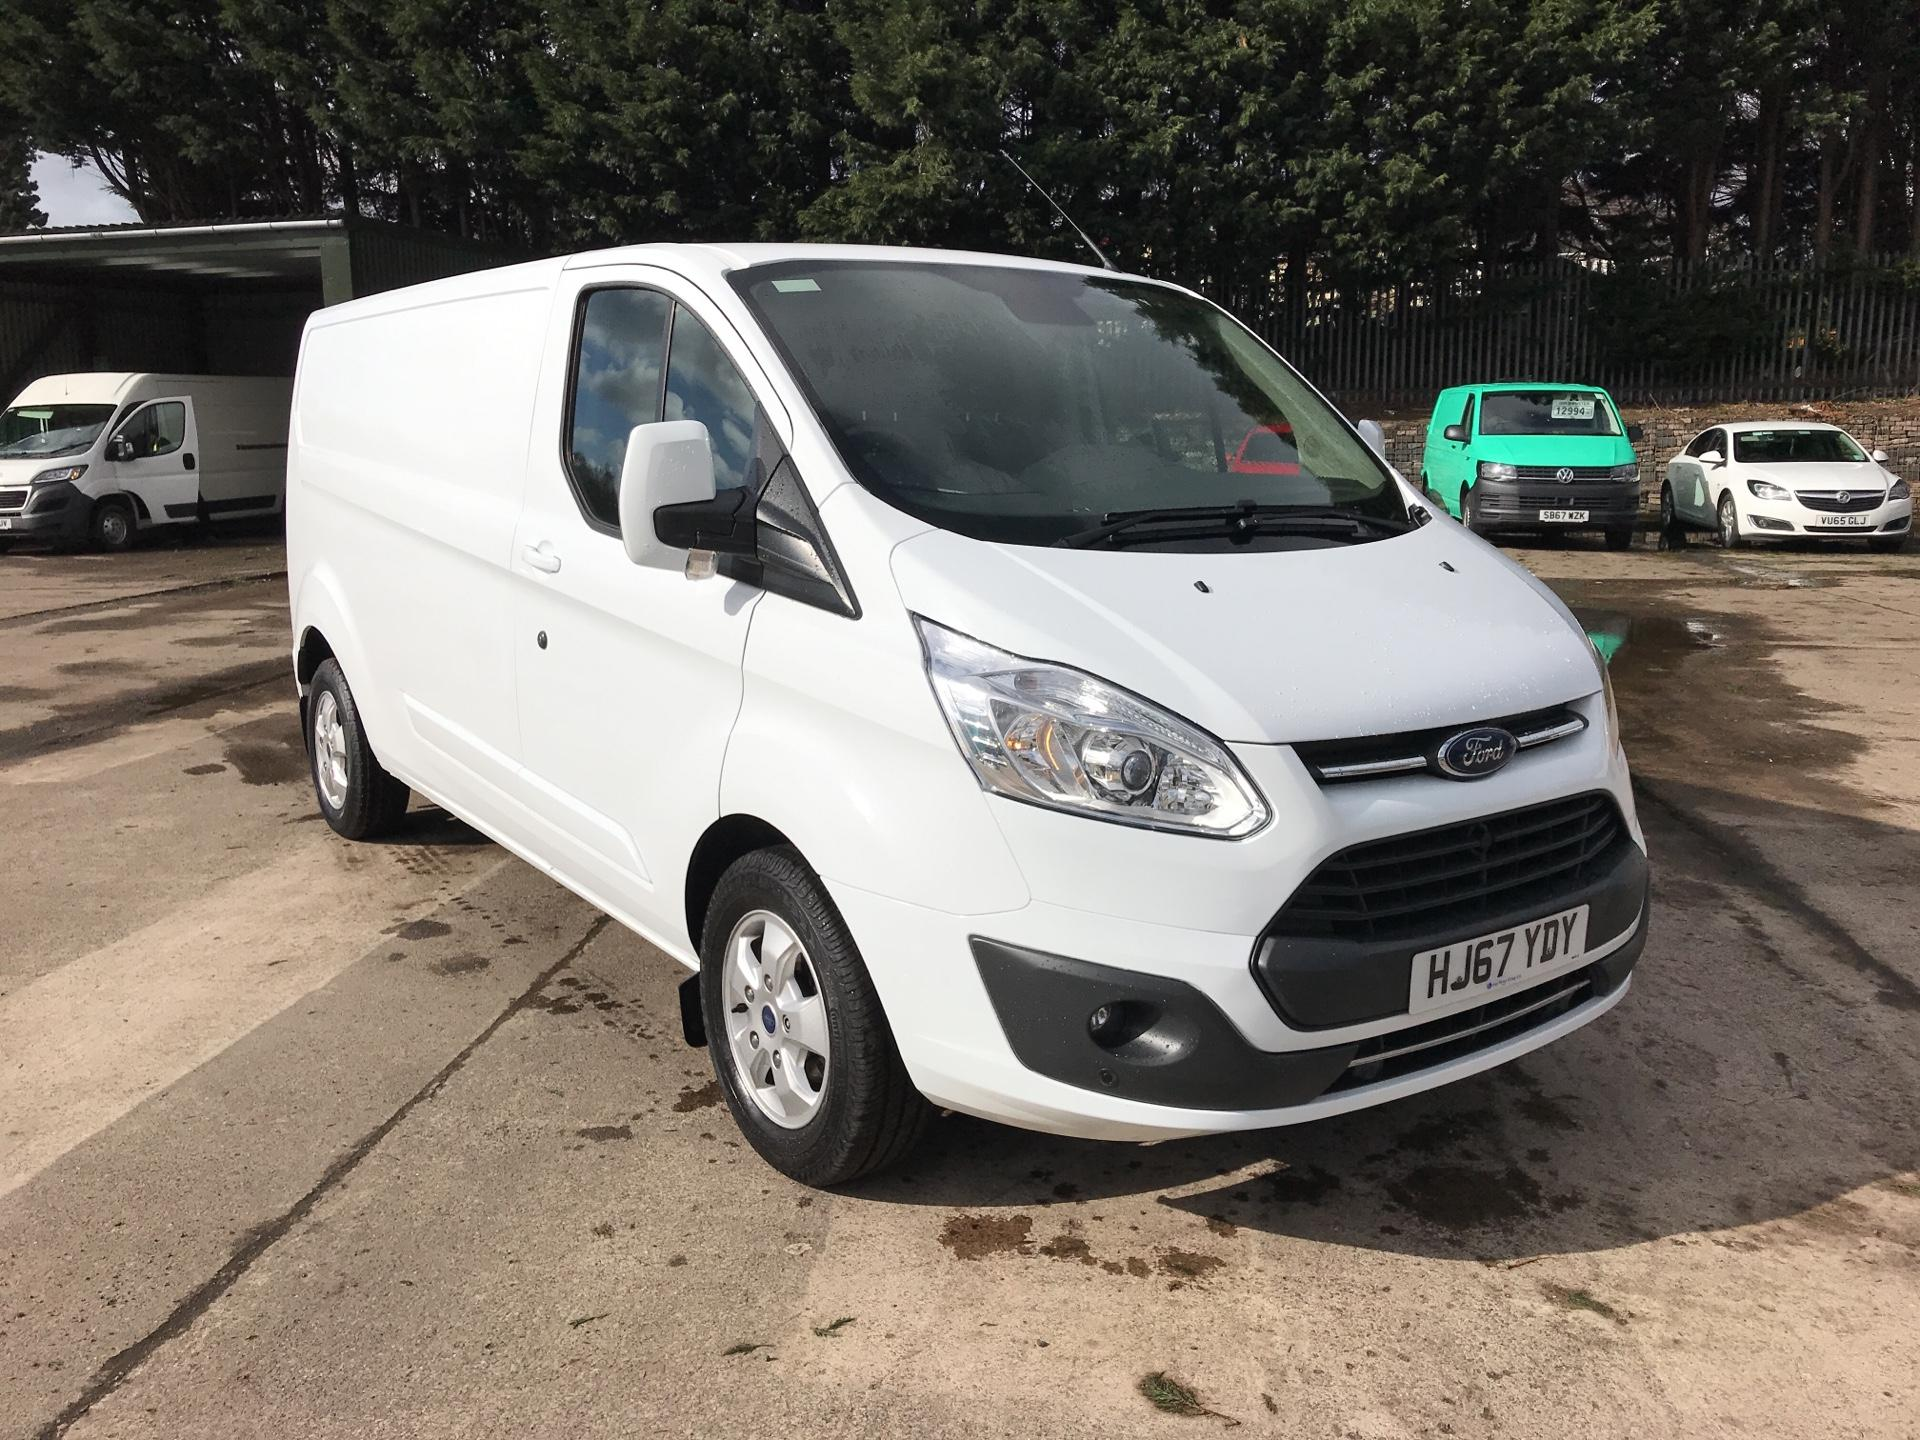 2017 Ford Transit Custom 290 L2 DIESEL FWD 2.0 TDCI 130PS LOW ROOF LIMITED VAN (HJ67YDY)